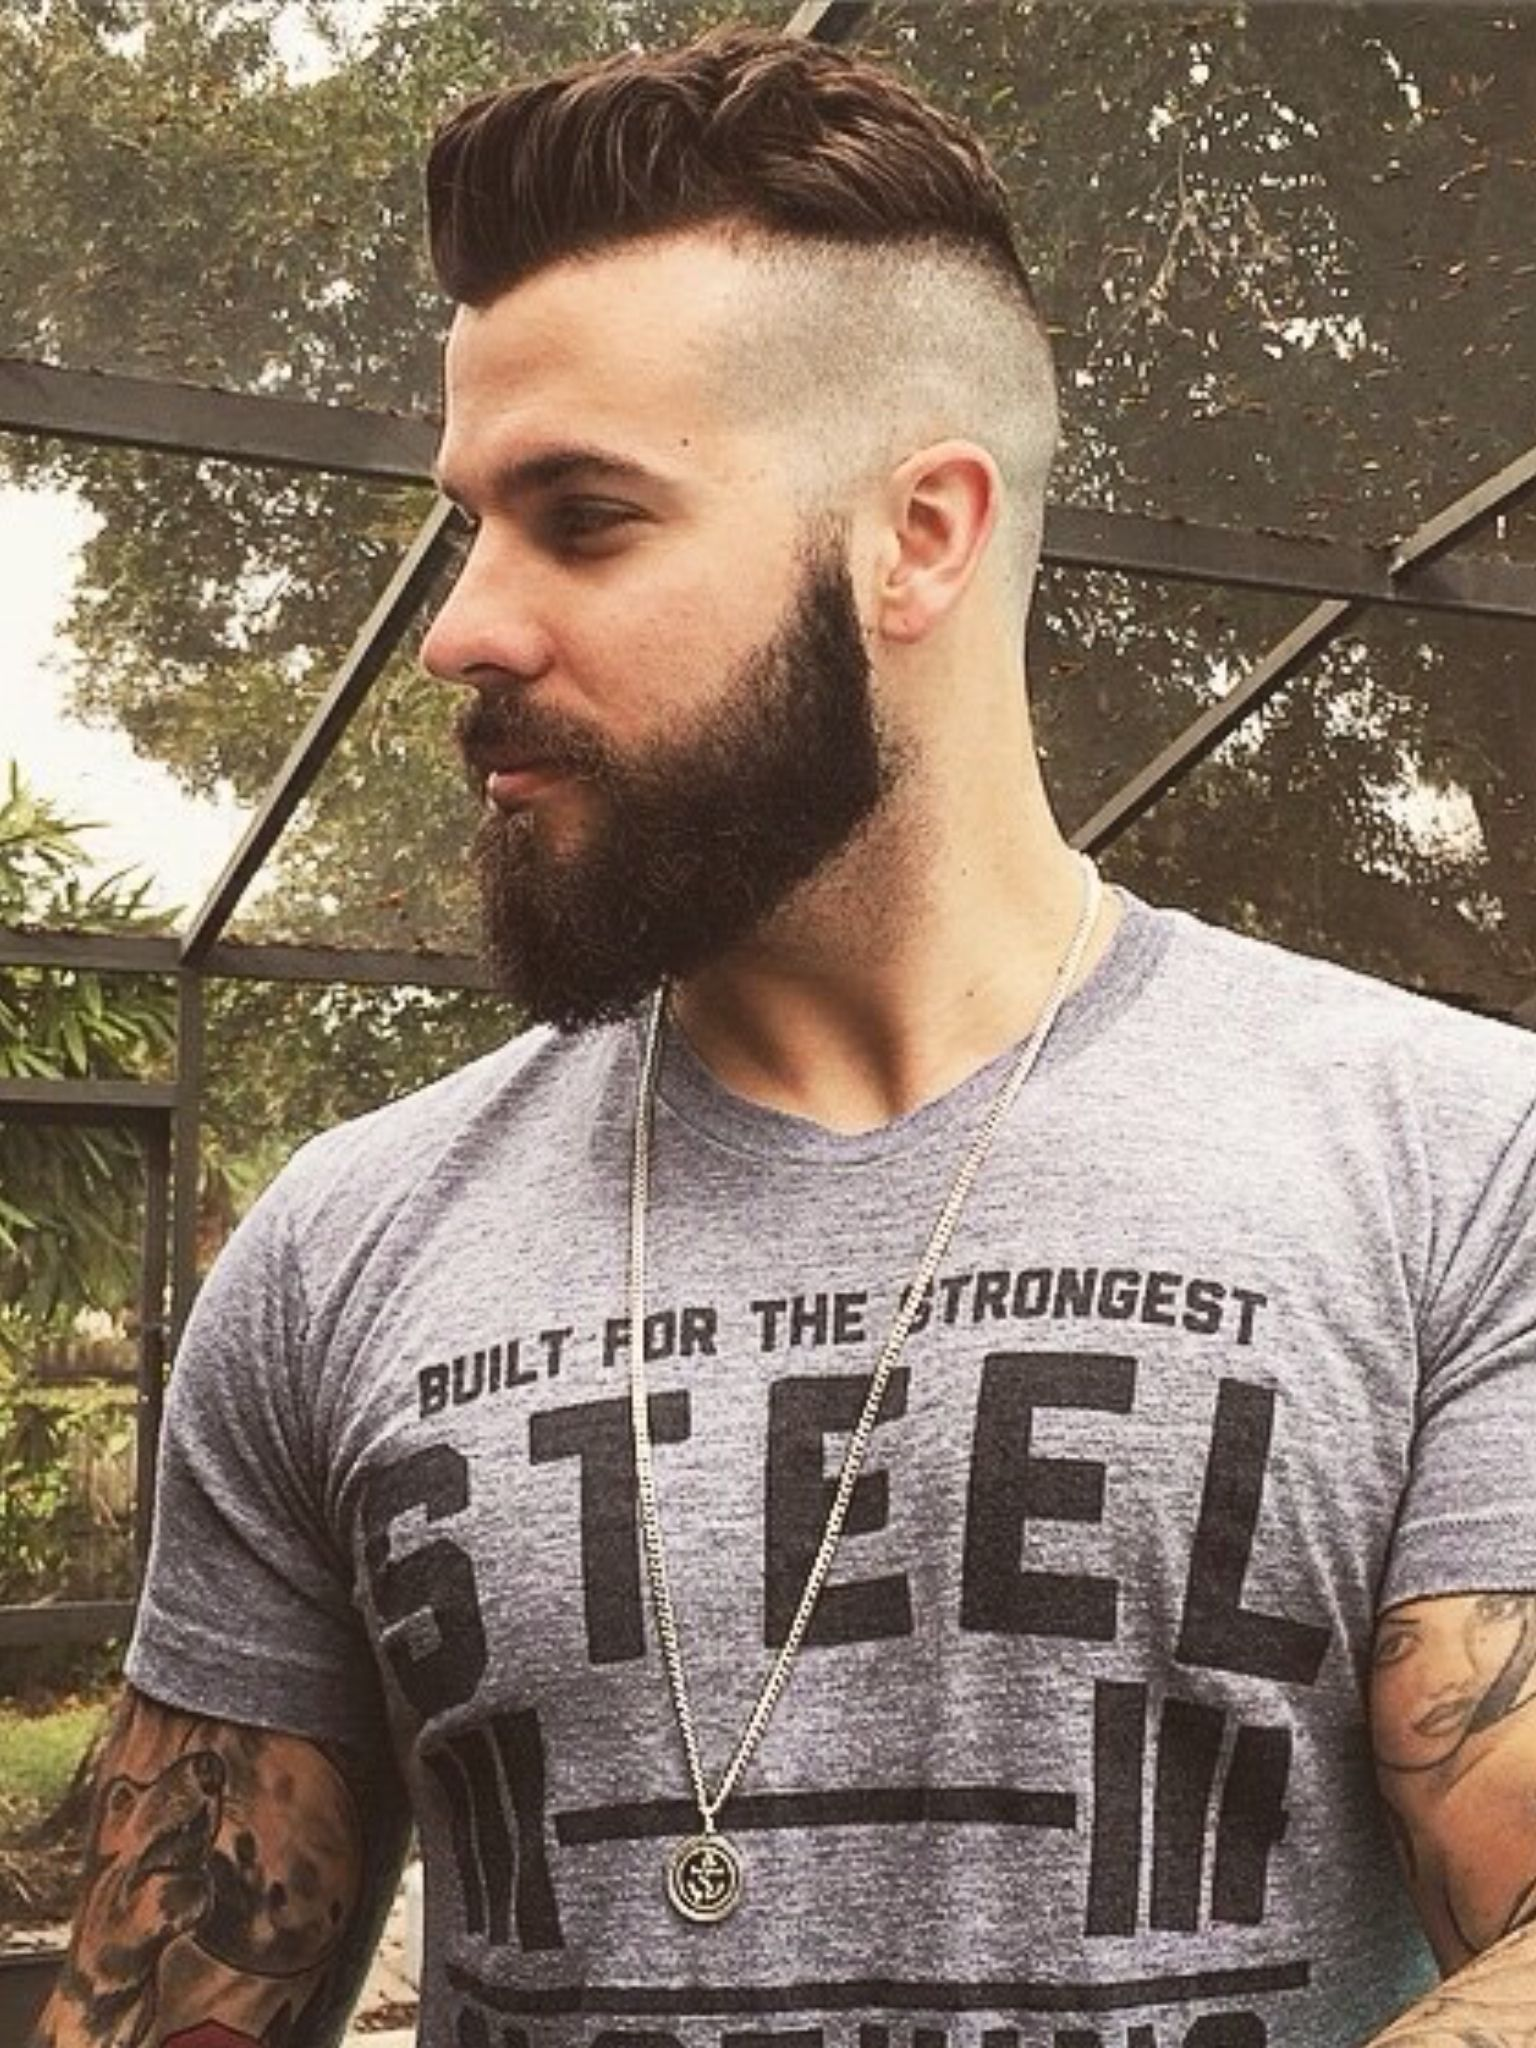 pin by khris salazar on 8topher2 | hipster haircut, hipster